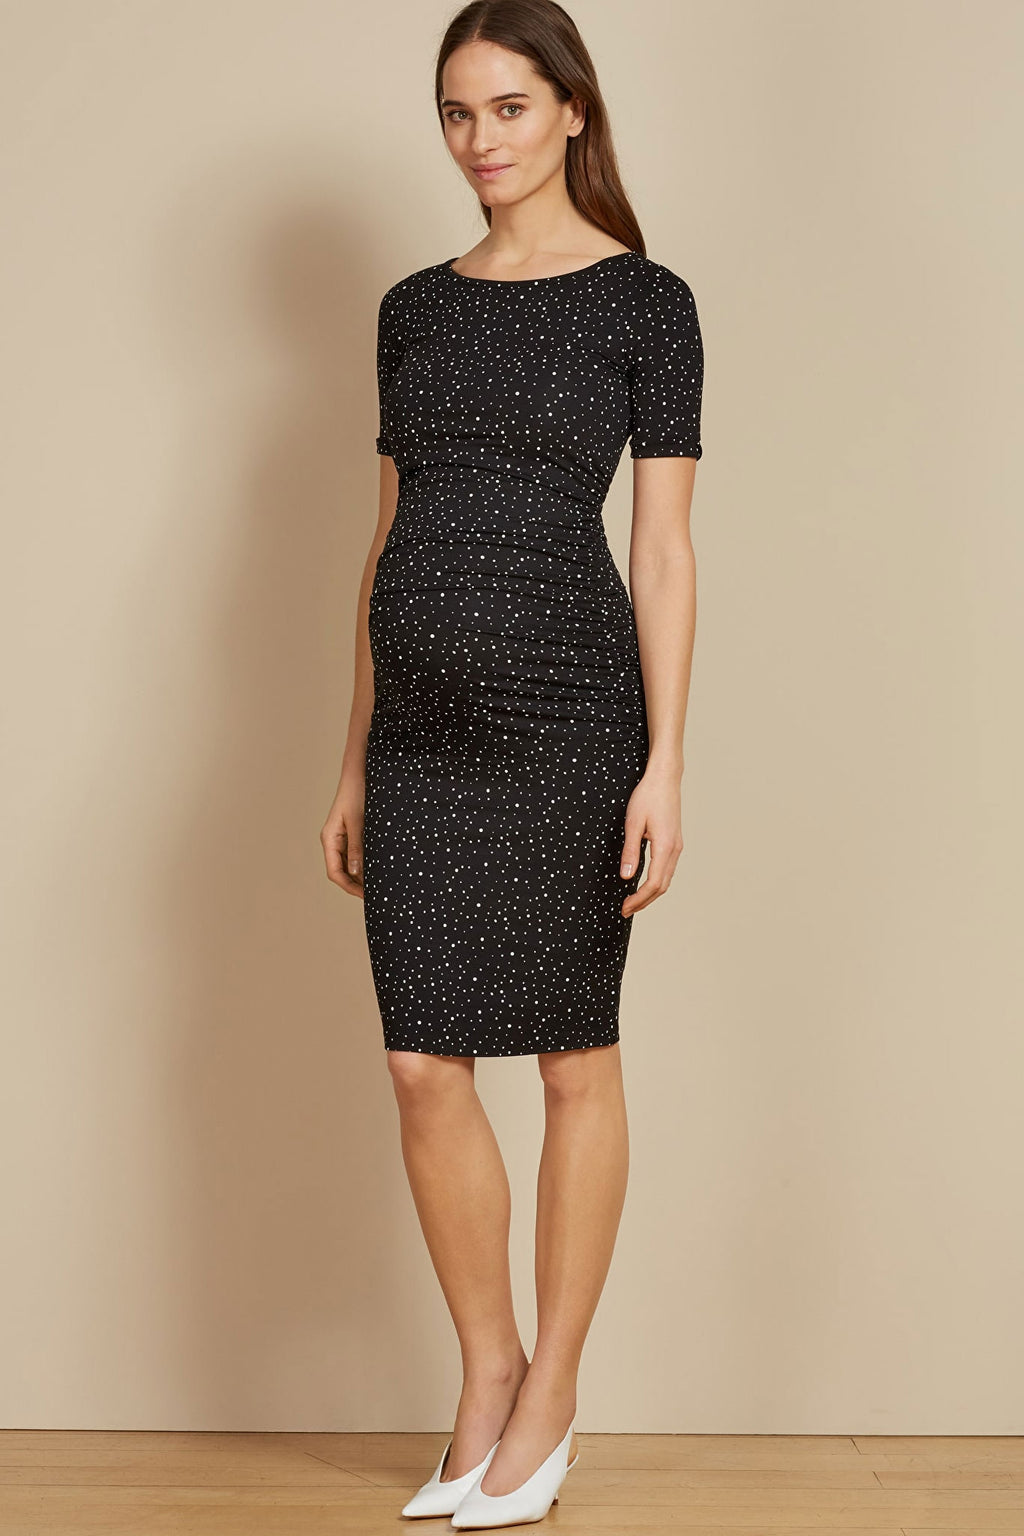 Isabella Oliver Amelie Cap sleeve Maternity Dress